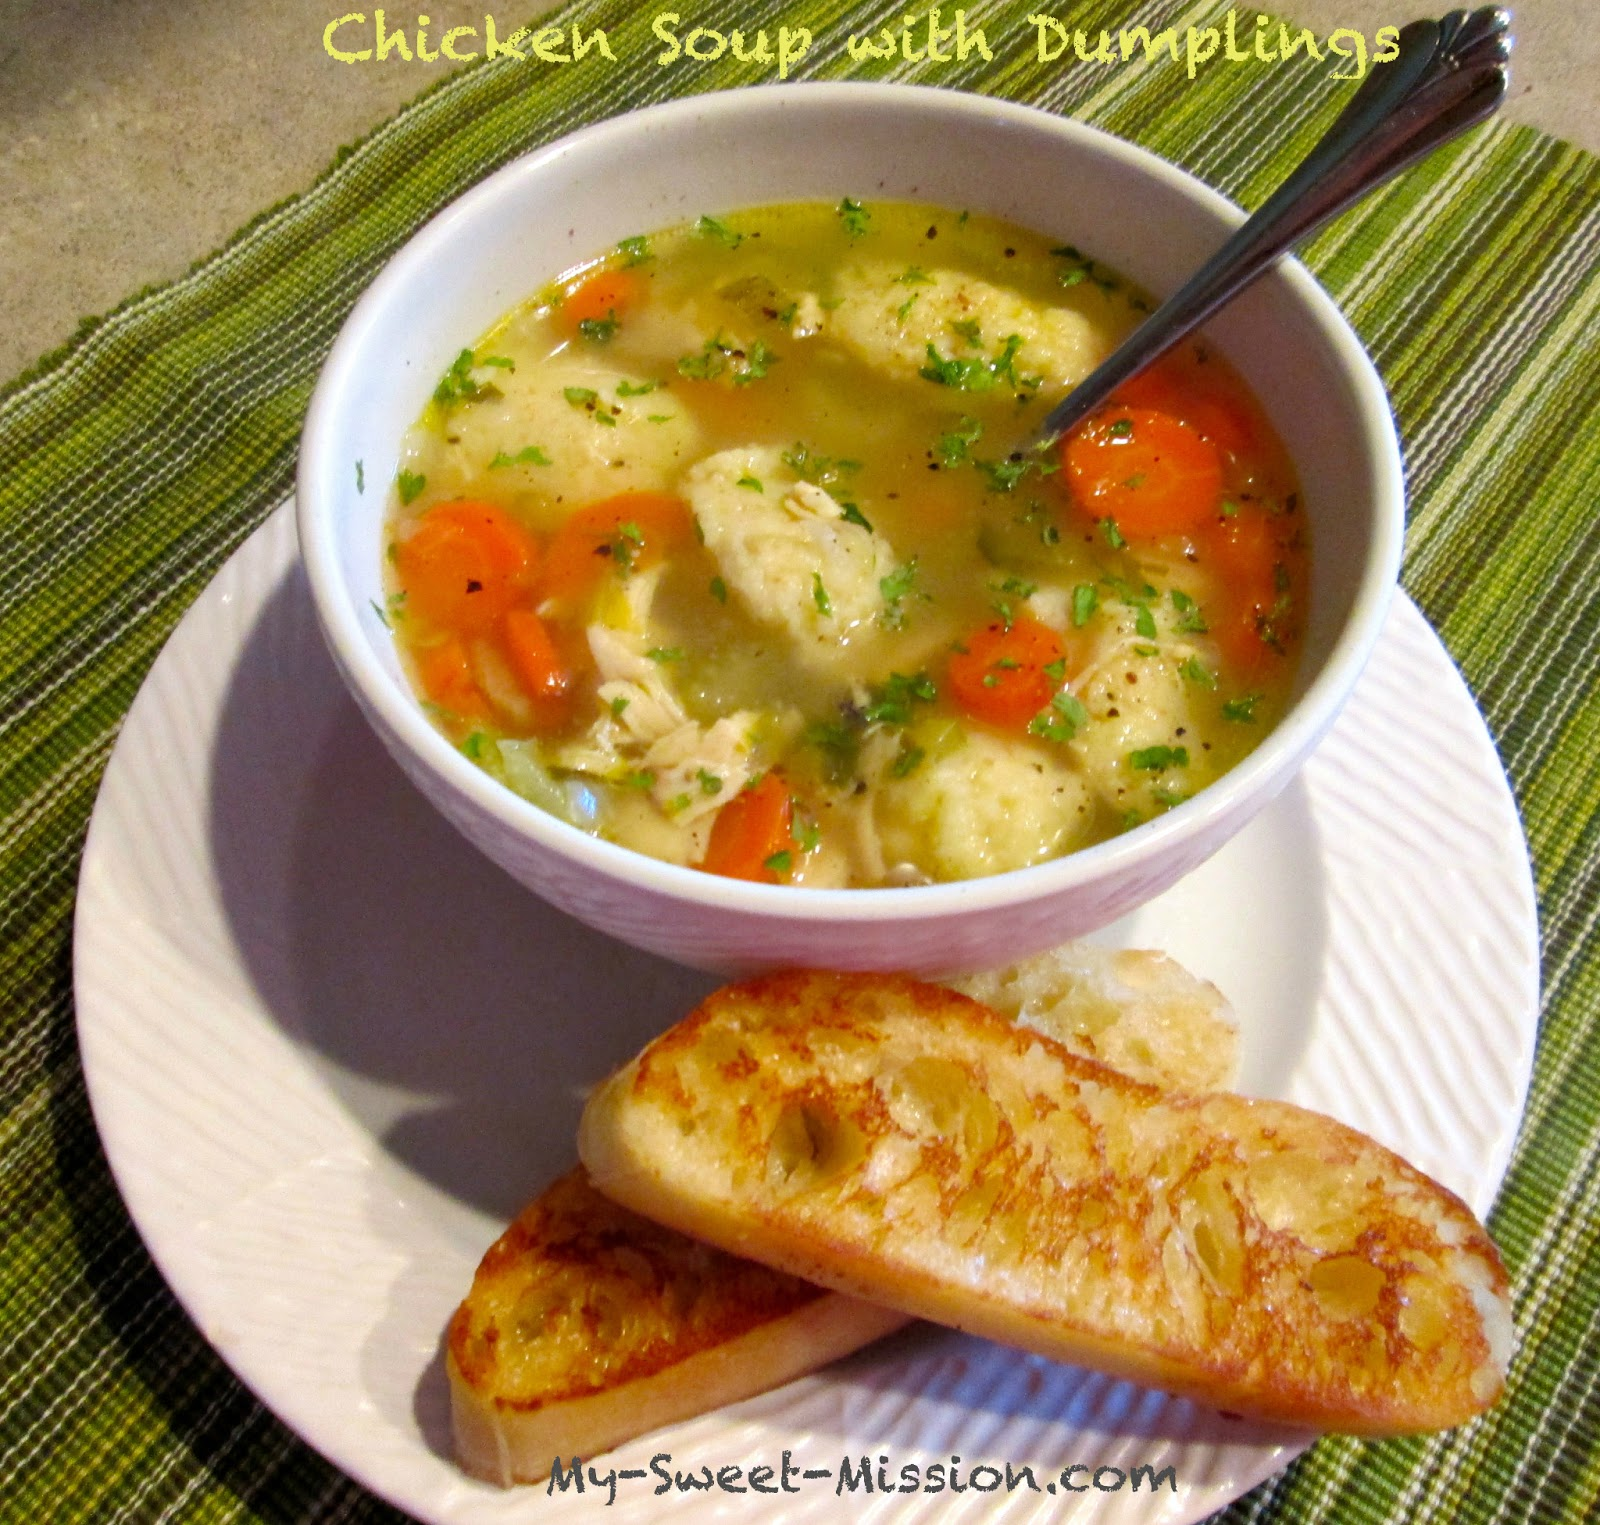 Chicken Soup with Dumplings by My Sweet Mission